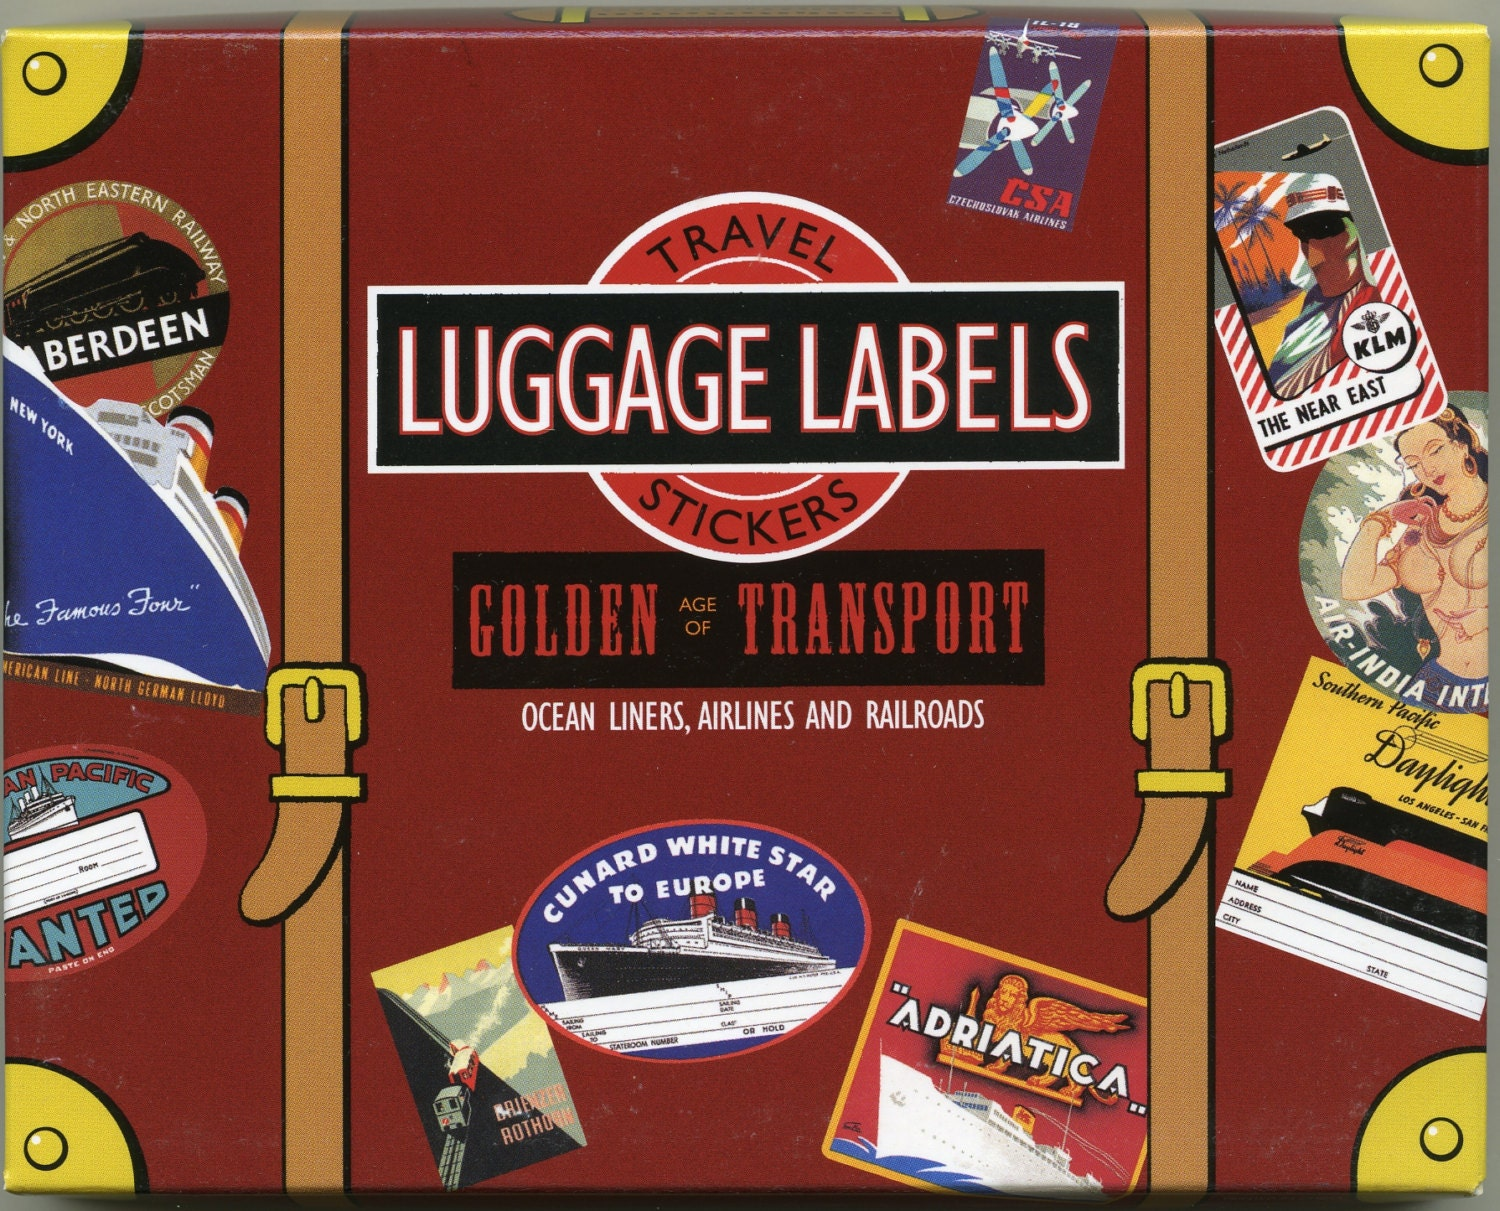 LUGGAGE LABELS, Luggage Stickers, Vintage Travel Stickers ...